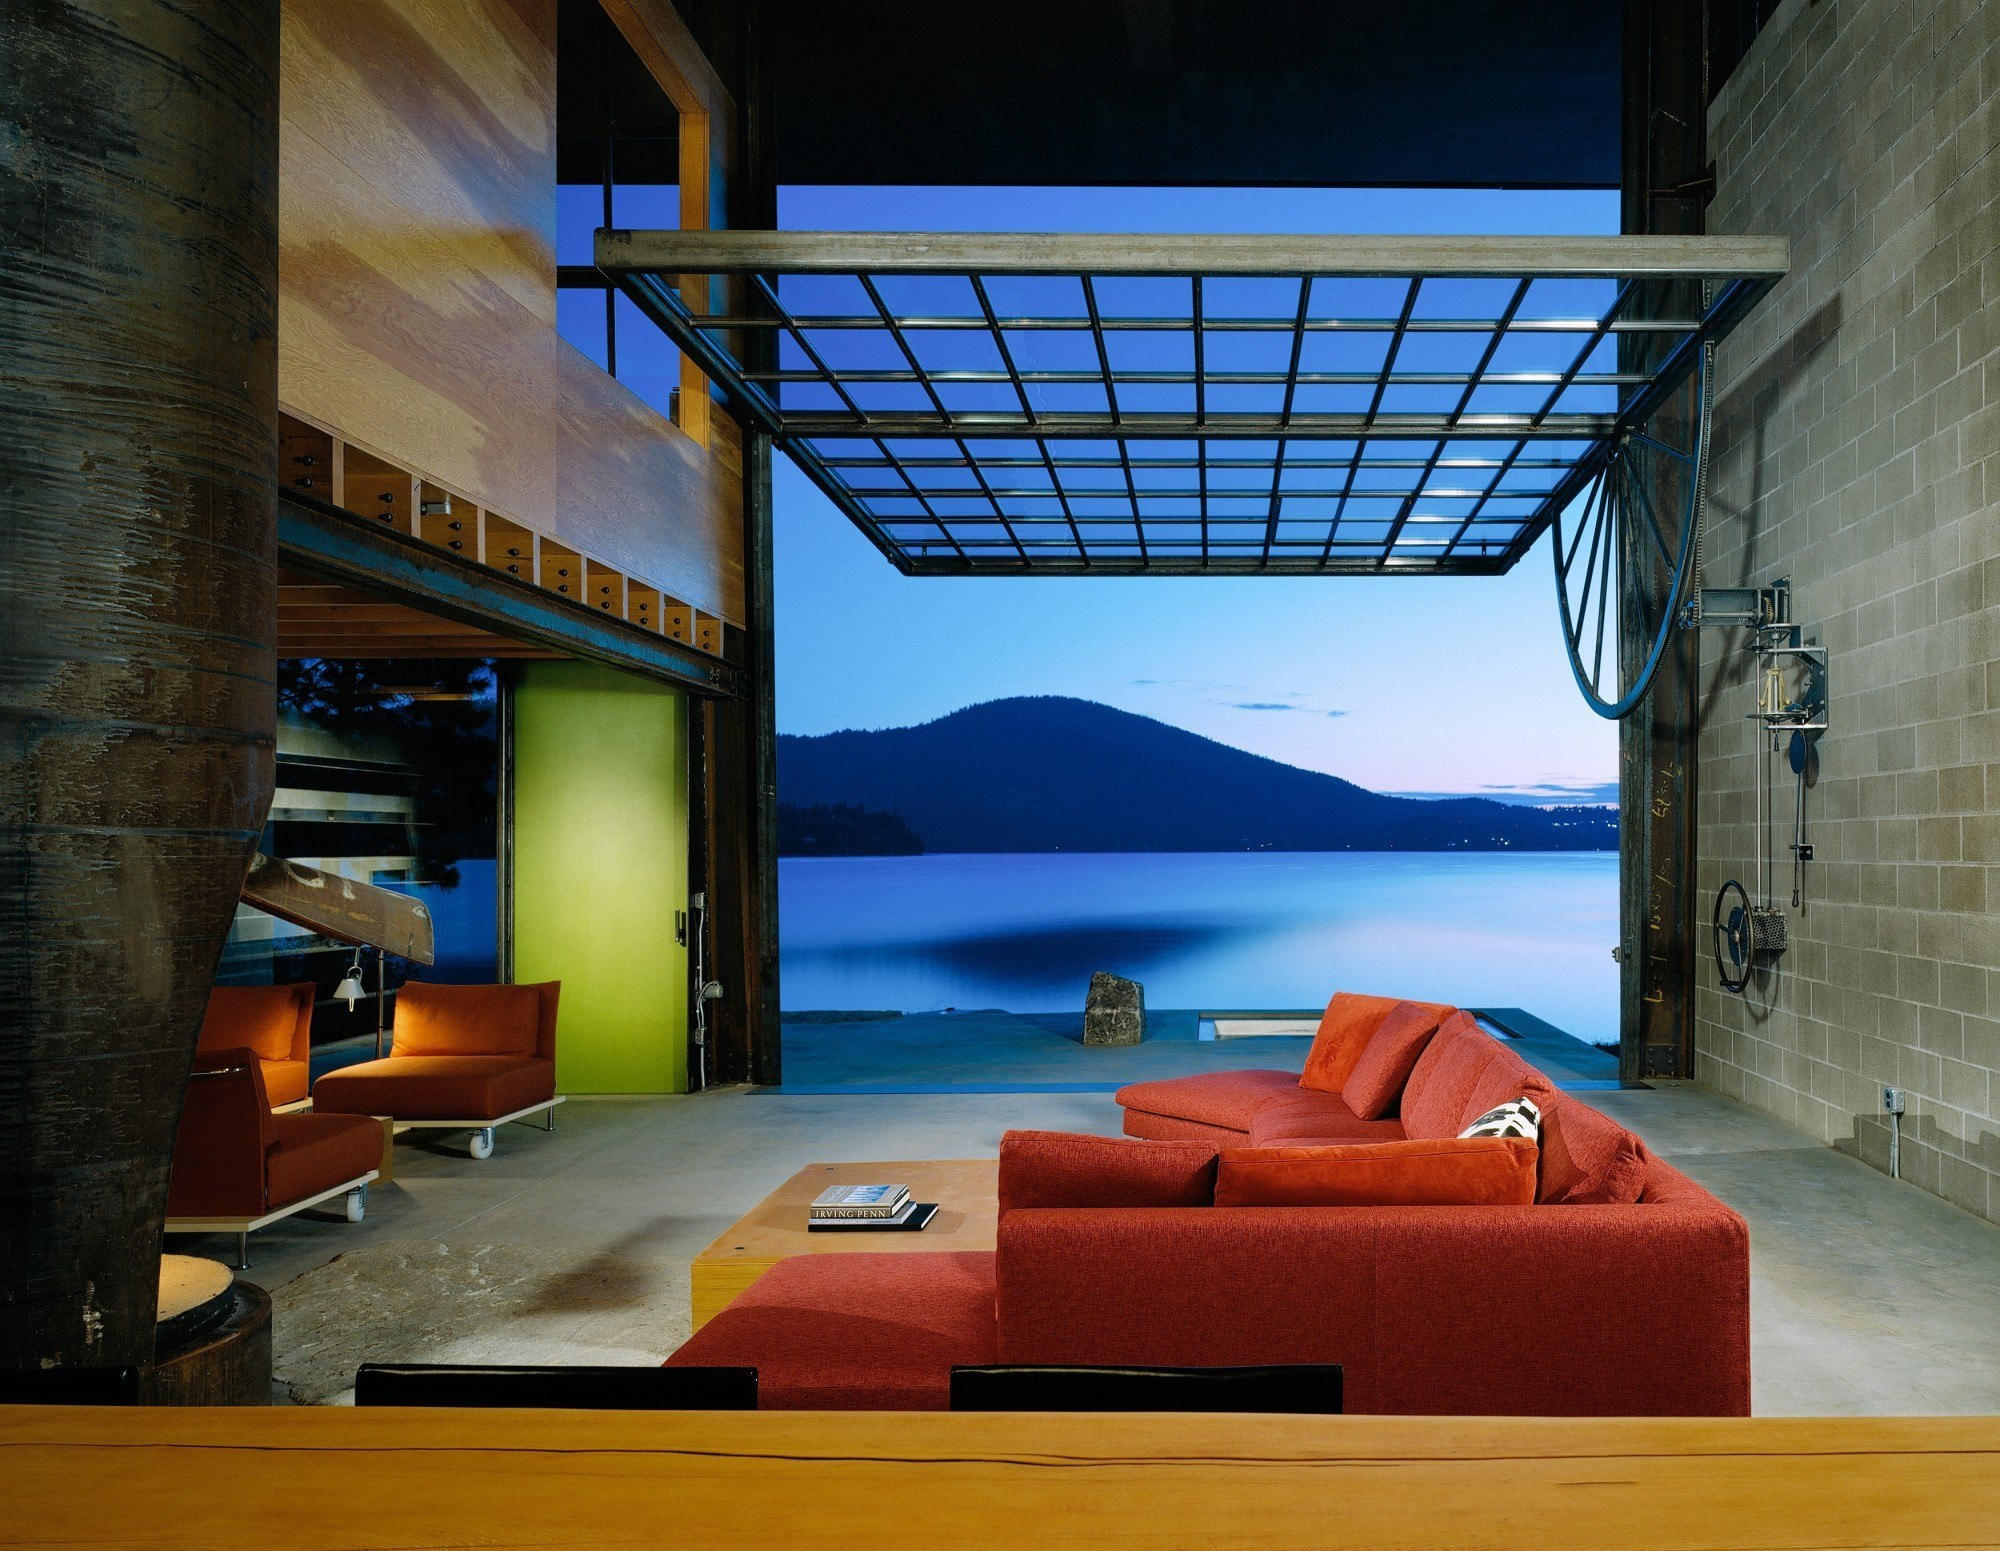 Chicken_Point_Cabin_olson-kundig-architecture-irene-van-guin-blog-interior-4